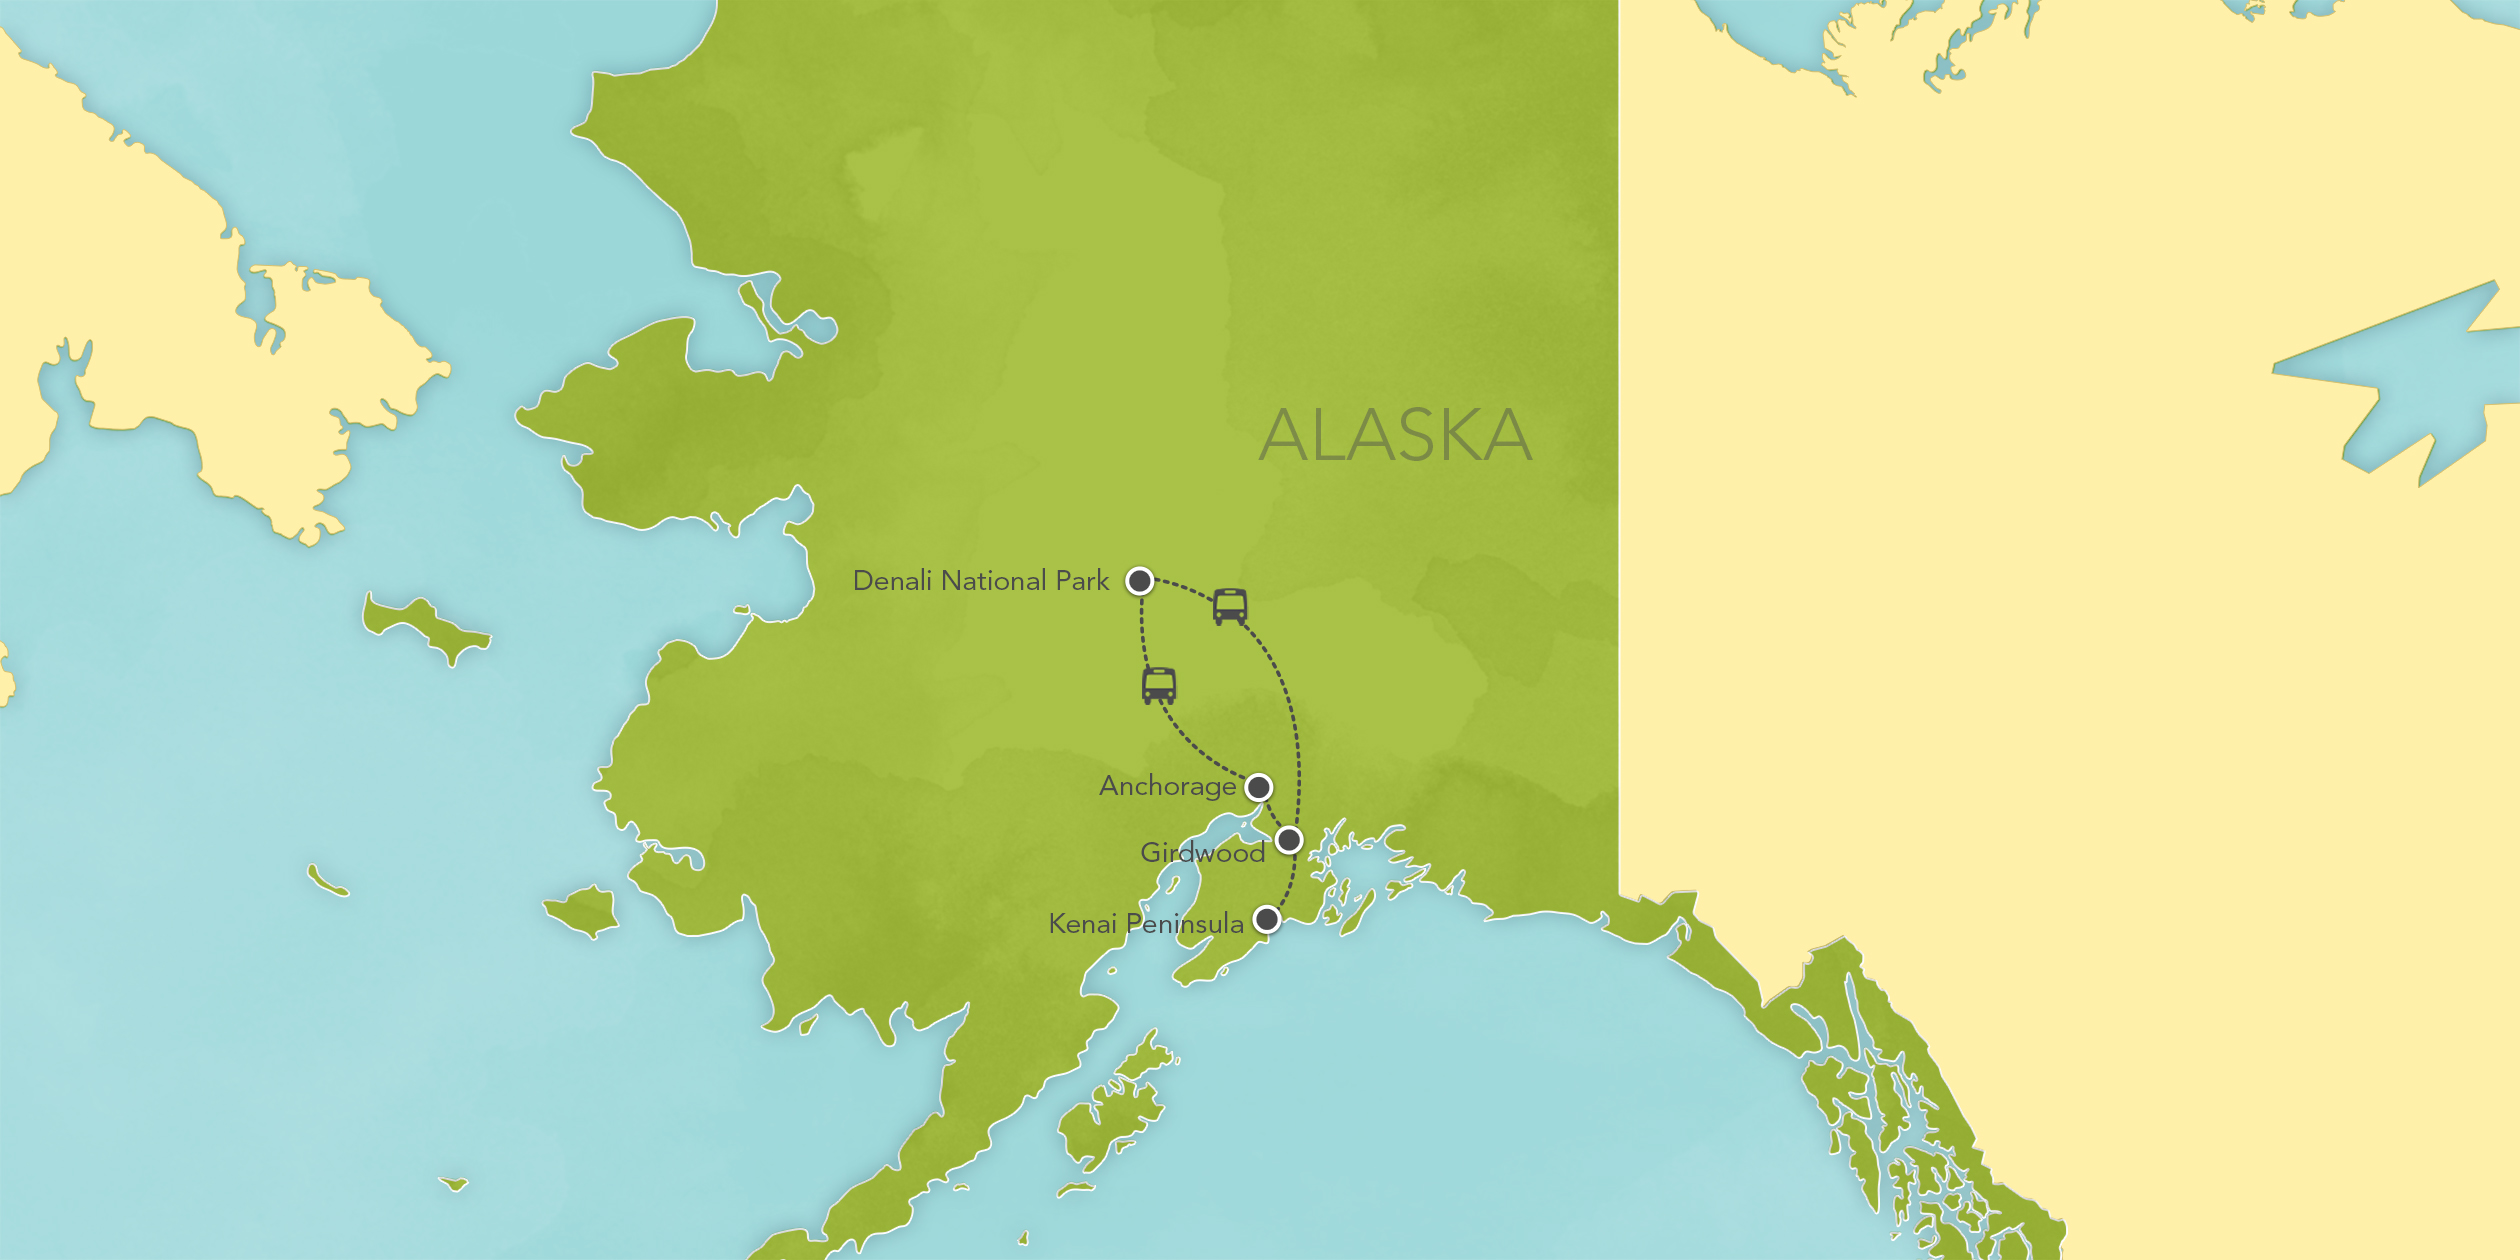 Itinerary map of Alaska: Denali National Park, Anchorage, Kenai Peninsula 2017